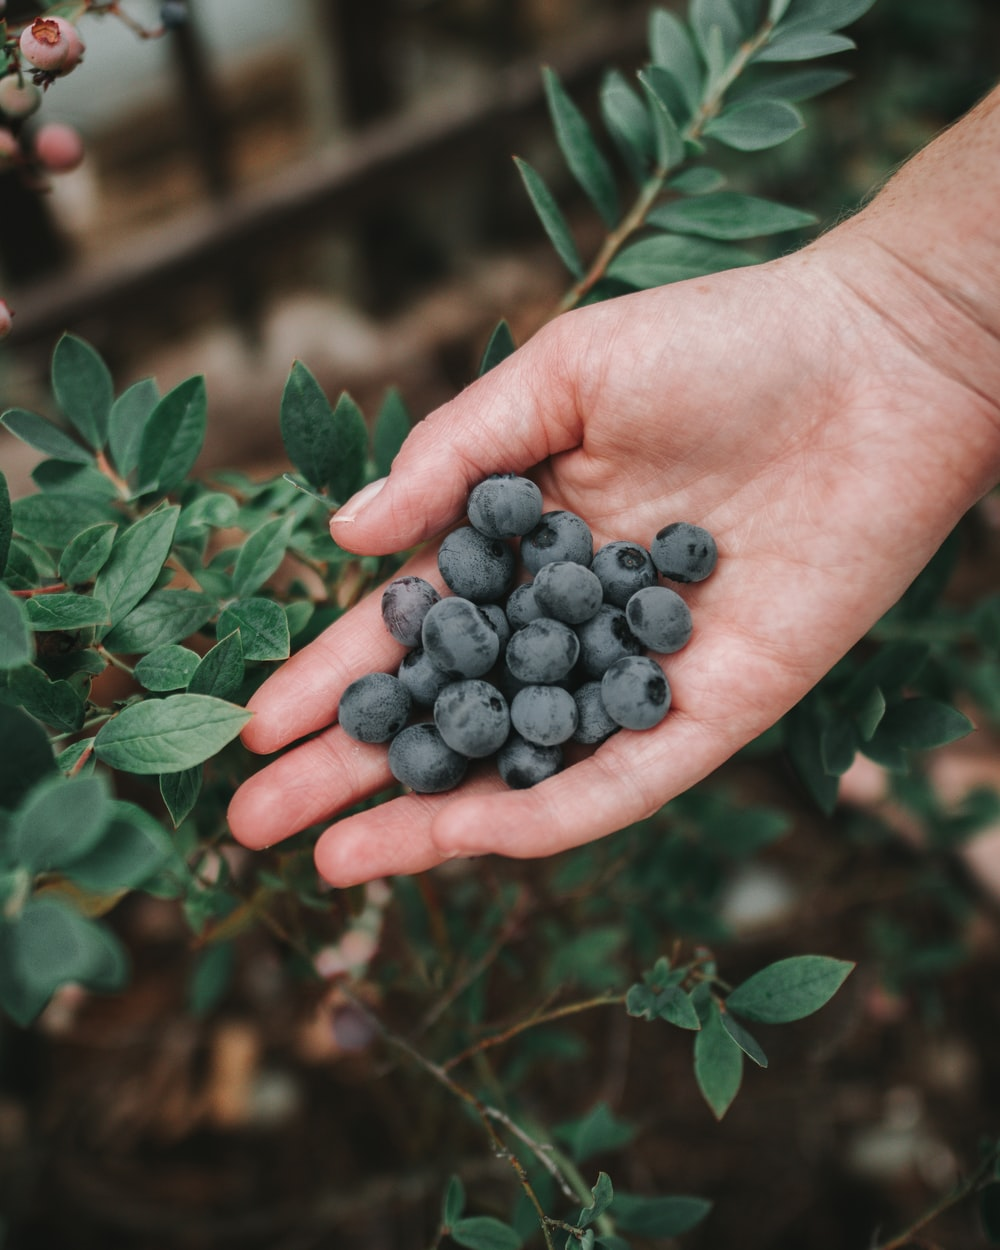 person holding handful of blueberries